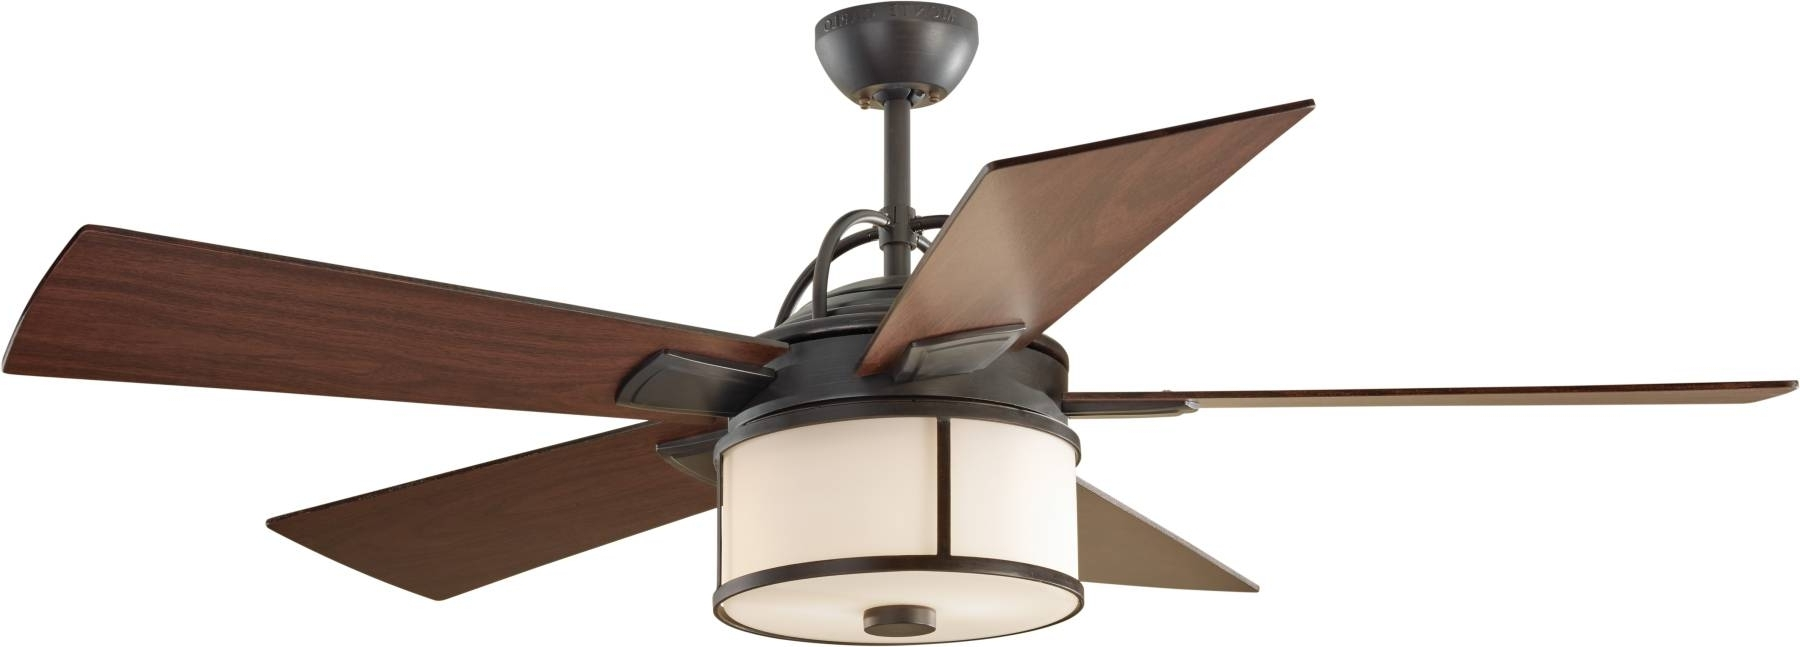 Outdoor Ceiling Fans With Light Globes With Regard To Most Recently Released Replacement Globes For Ceiling Fan – Pixball (View 20 of 20)